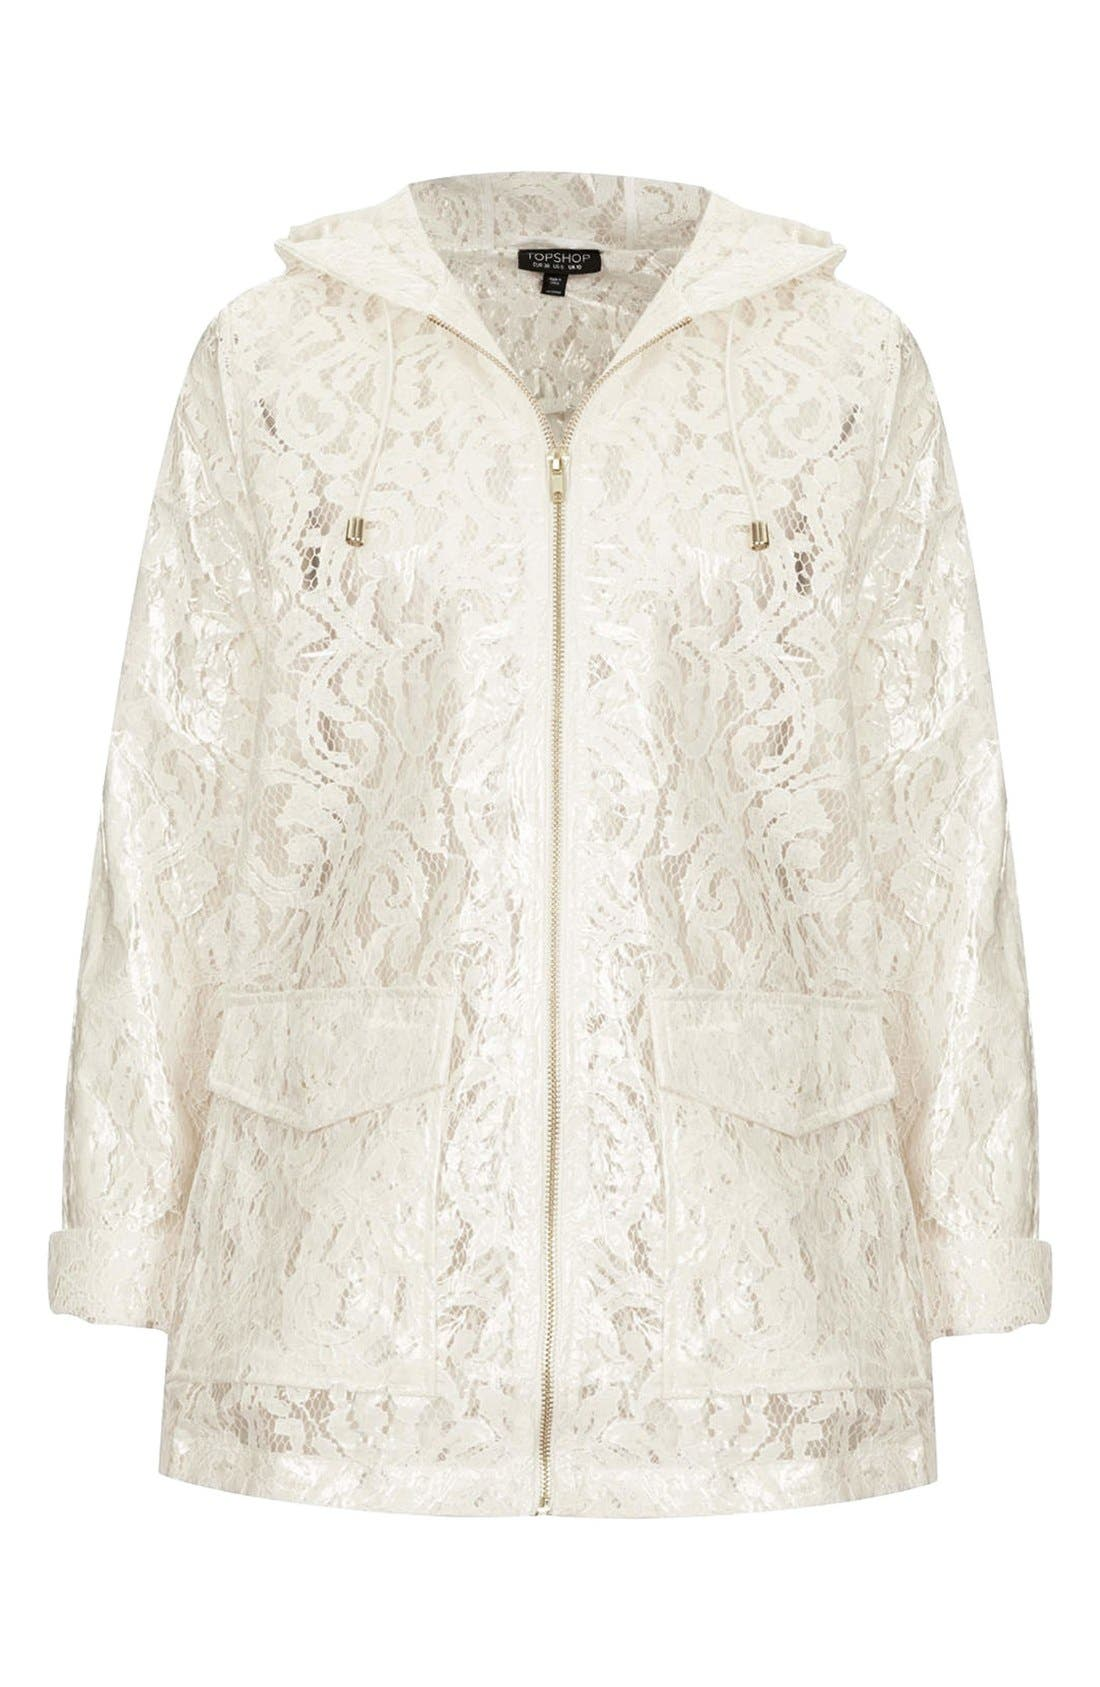 Alternate Image 3  - Topshop Cream Lace Mackintosh Coat